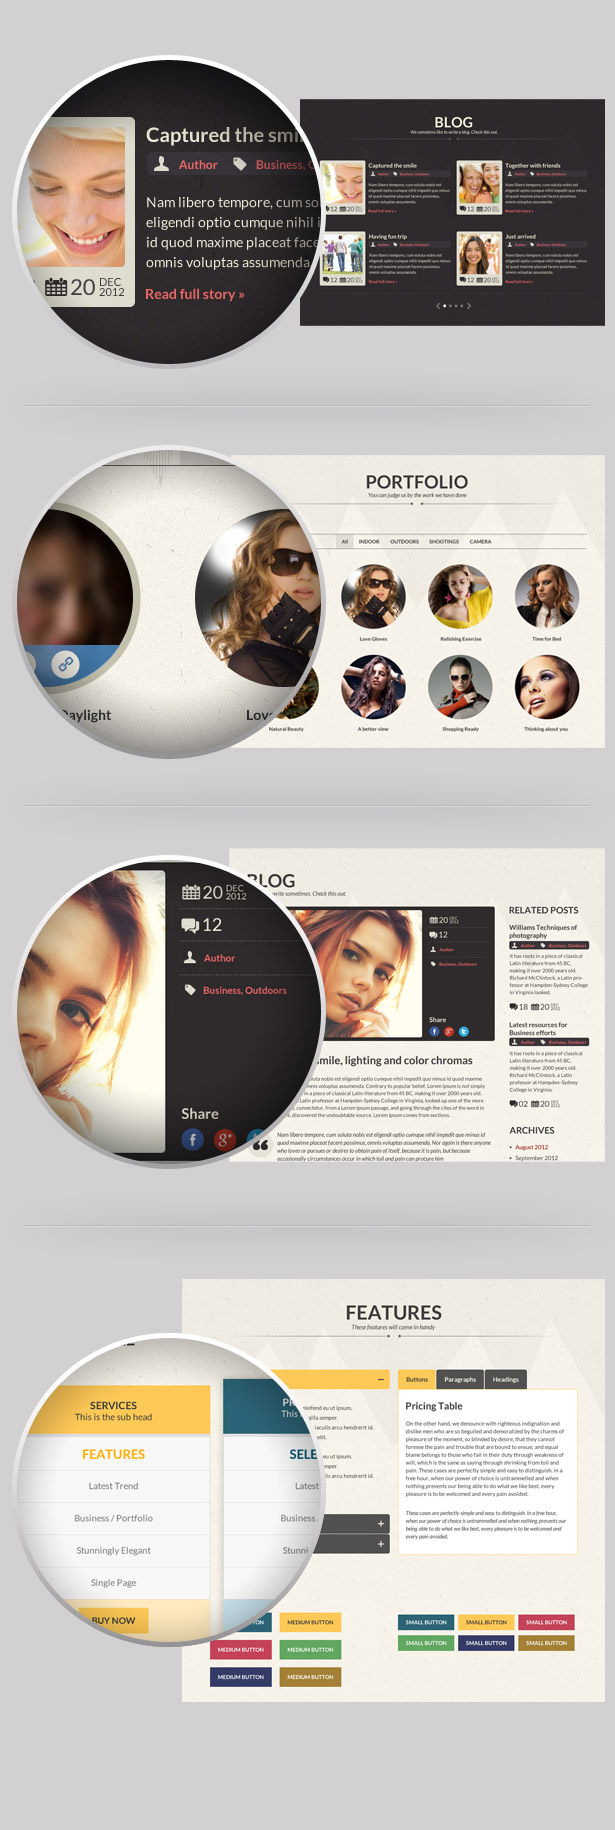 CORE - Multipurpose Single Page PSD Template - 2